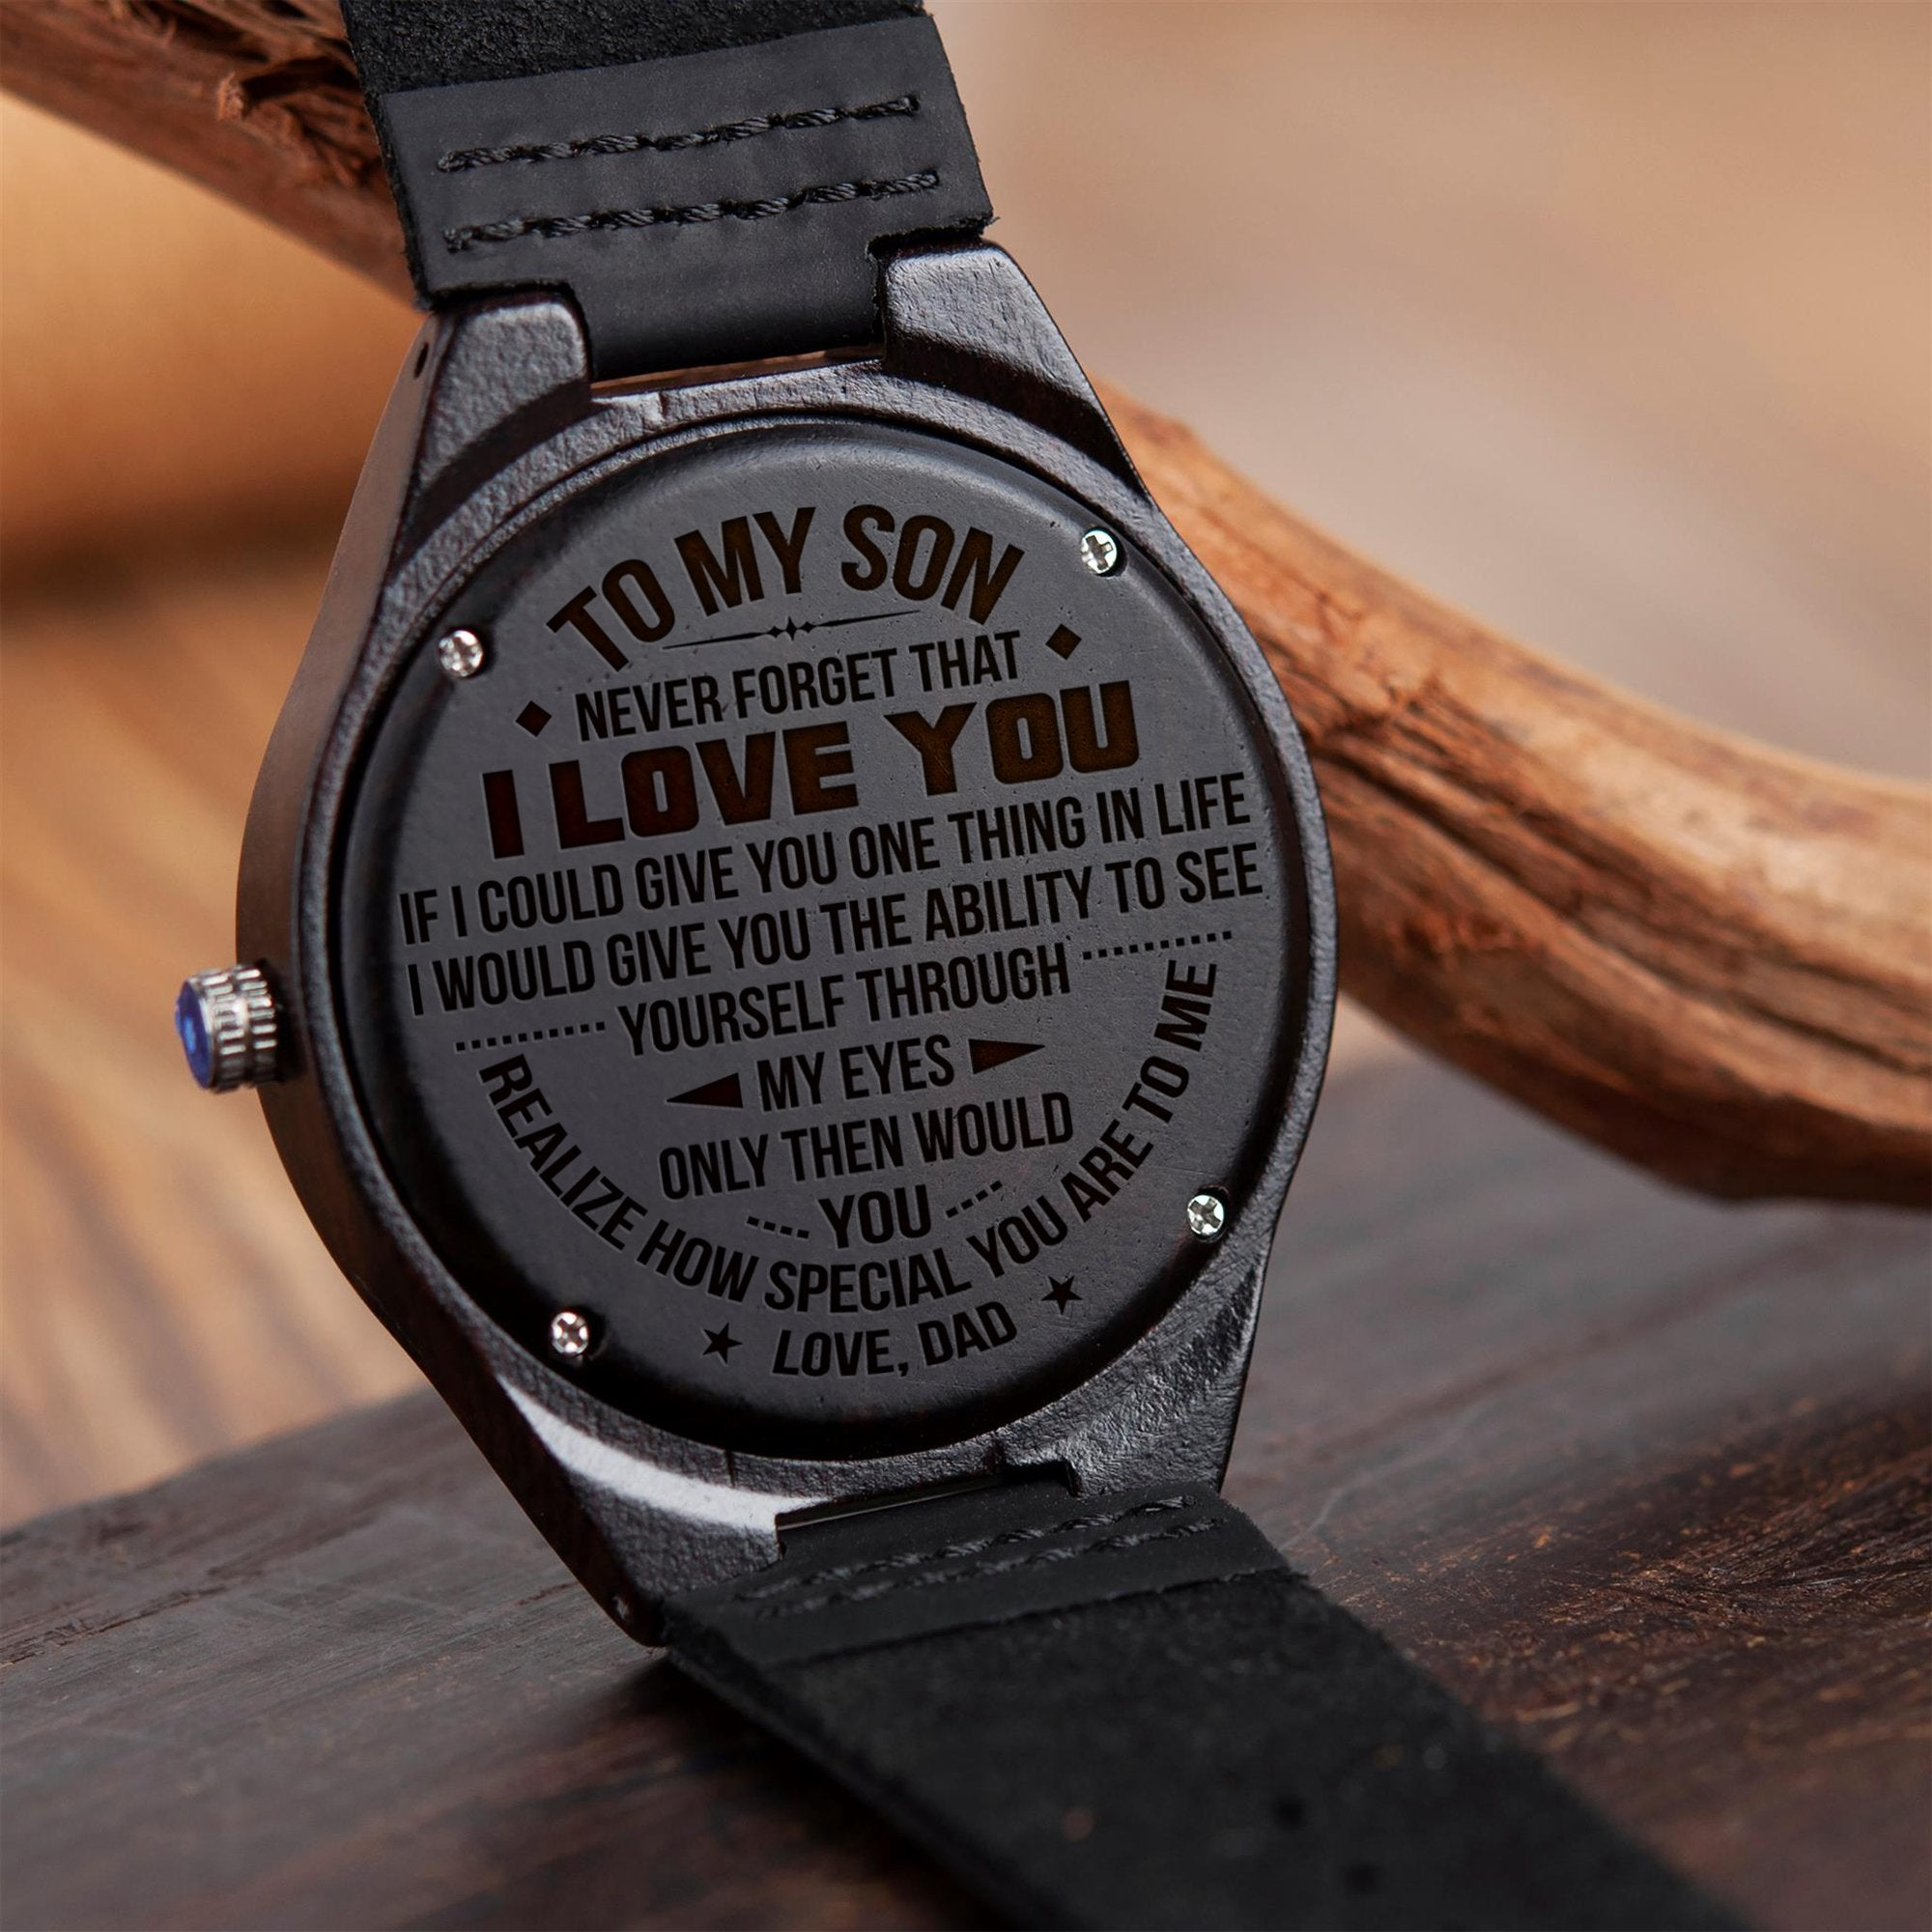 5336277a8d1c9 Dad to Son - I Love You - Engraved Wood Watch - Laken Style